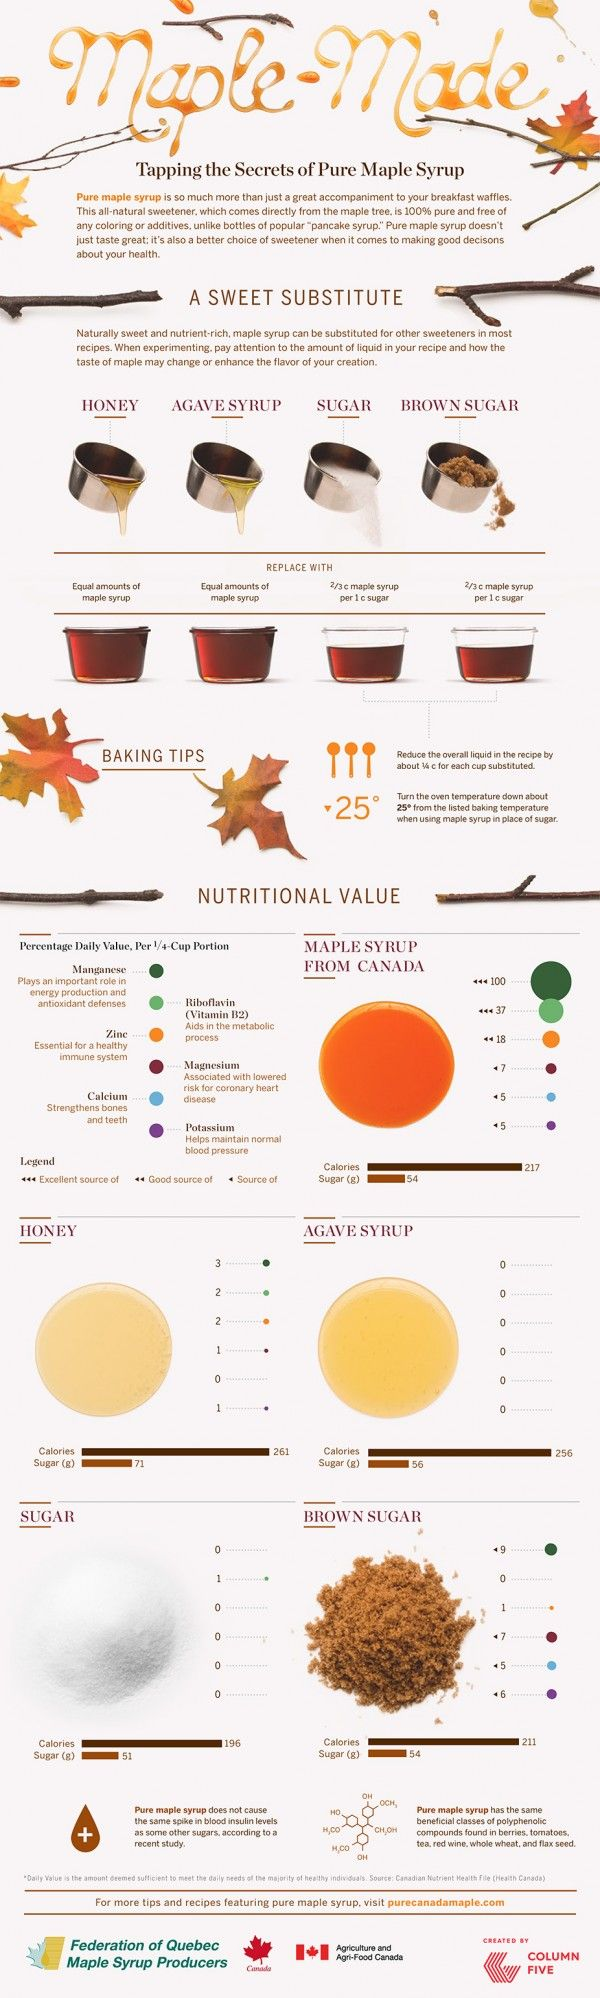 Visualizing the Health Benefits of Pure Maple Syrup, and it's Dramatic | by Percy Davidson